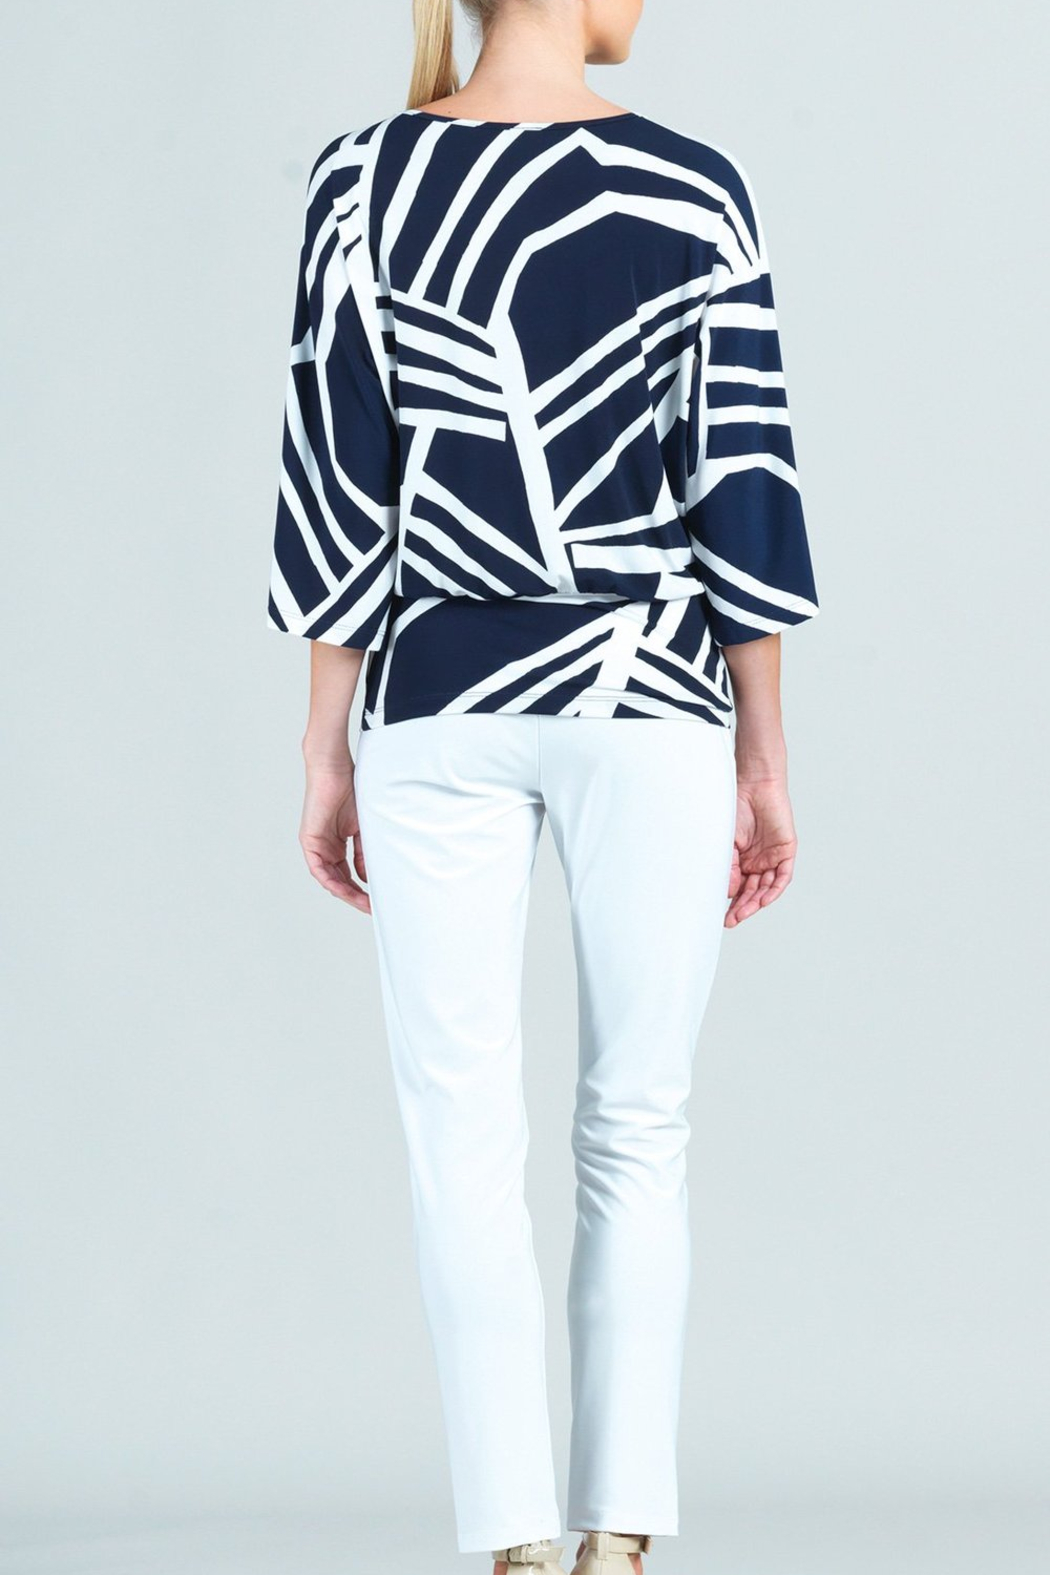 Clara Sunwoo  Zig Zag Striped Top - Front Full Image